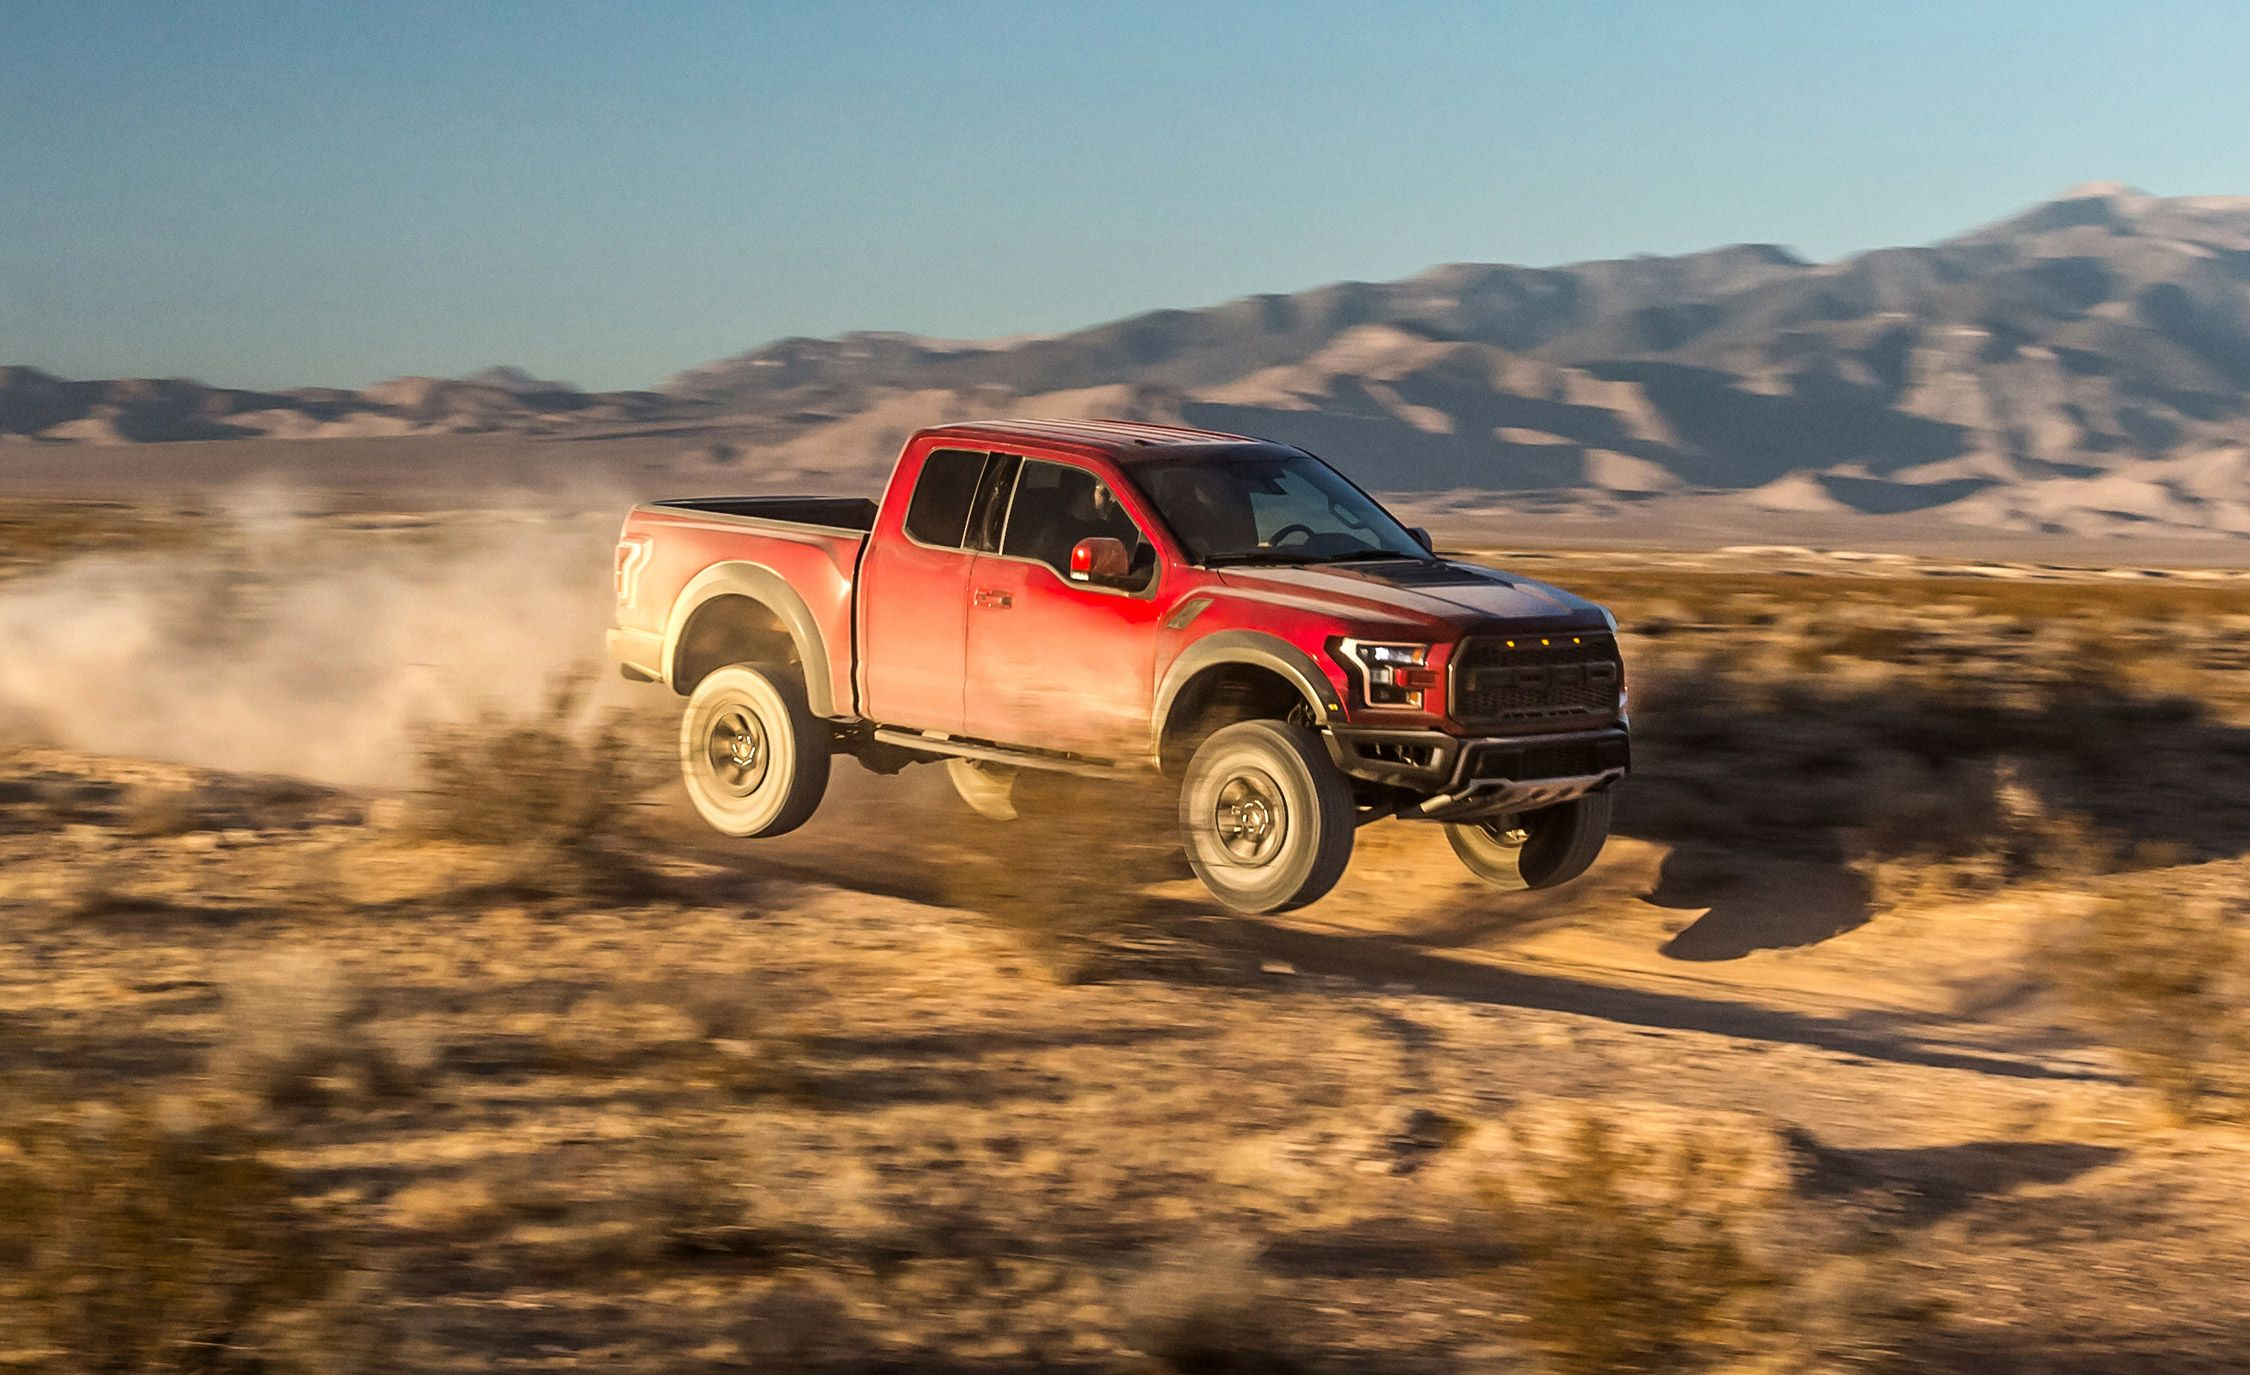 Pin On Cool Cars Desert ford truck full hd wallpapers